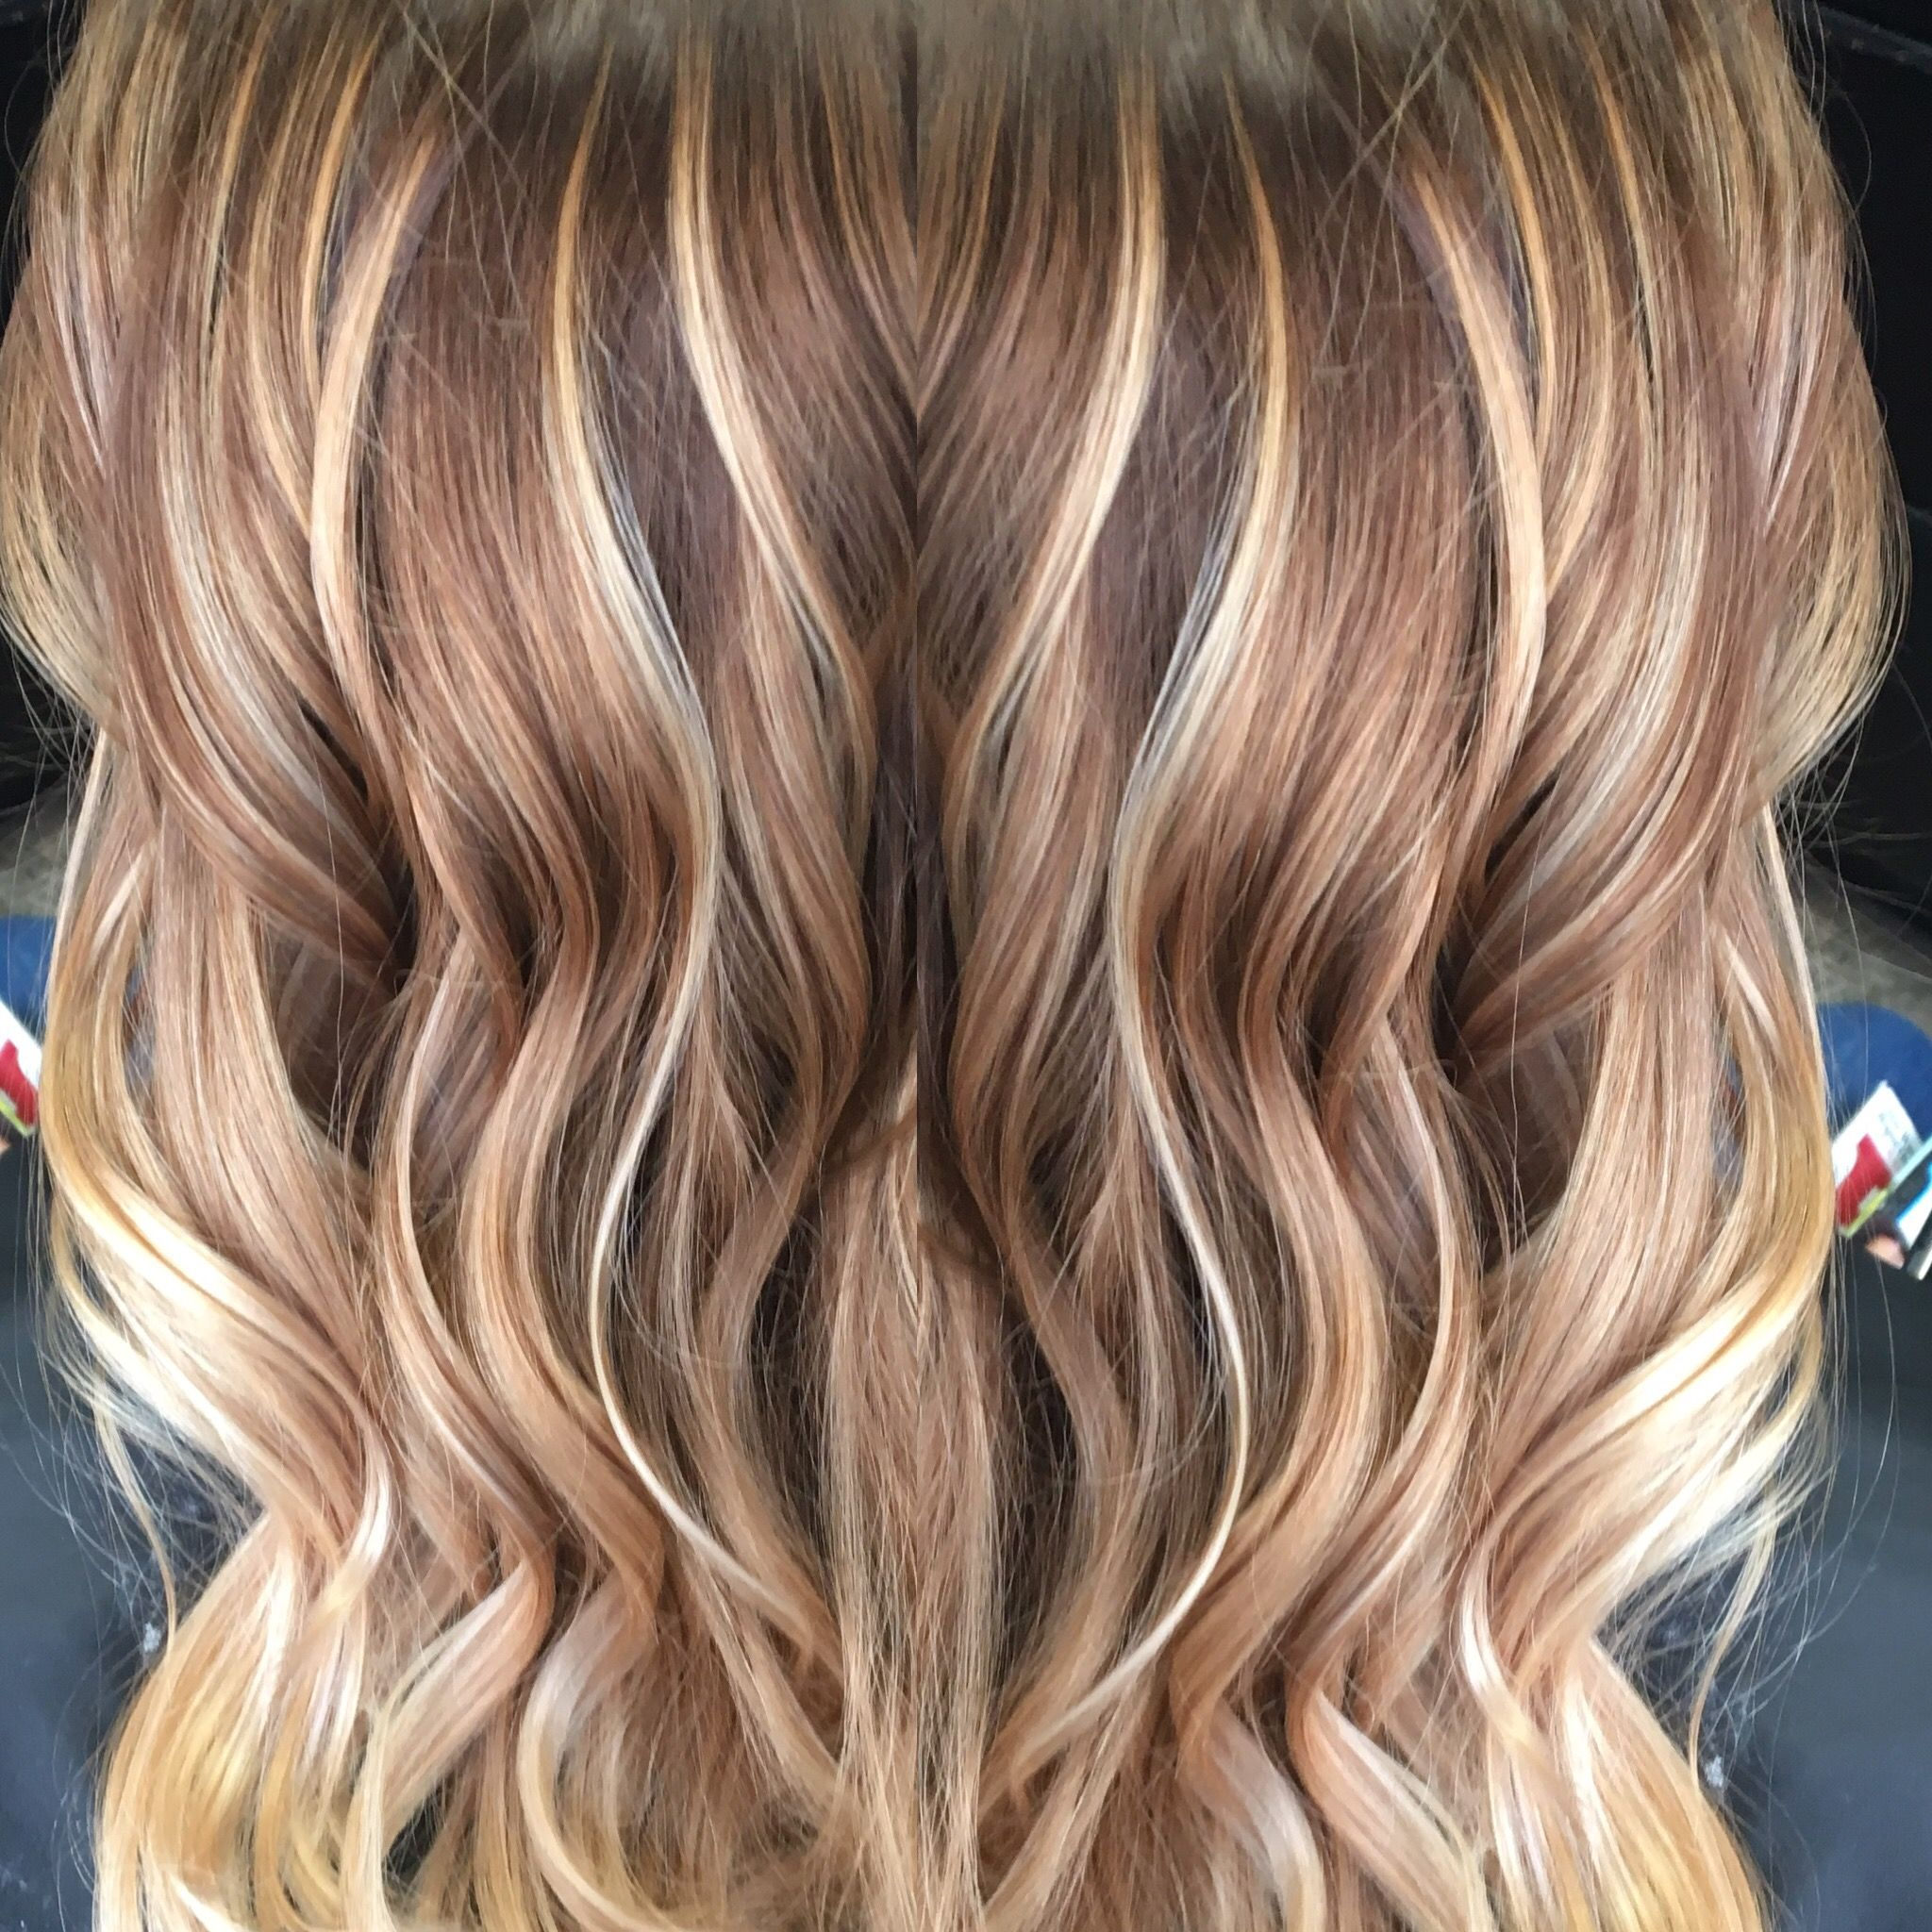 Caramel And Blonde Balayage Balayage Hair Blonde Balayage Hair Styles